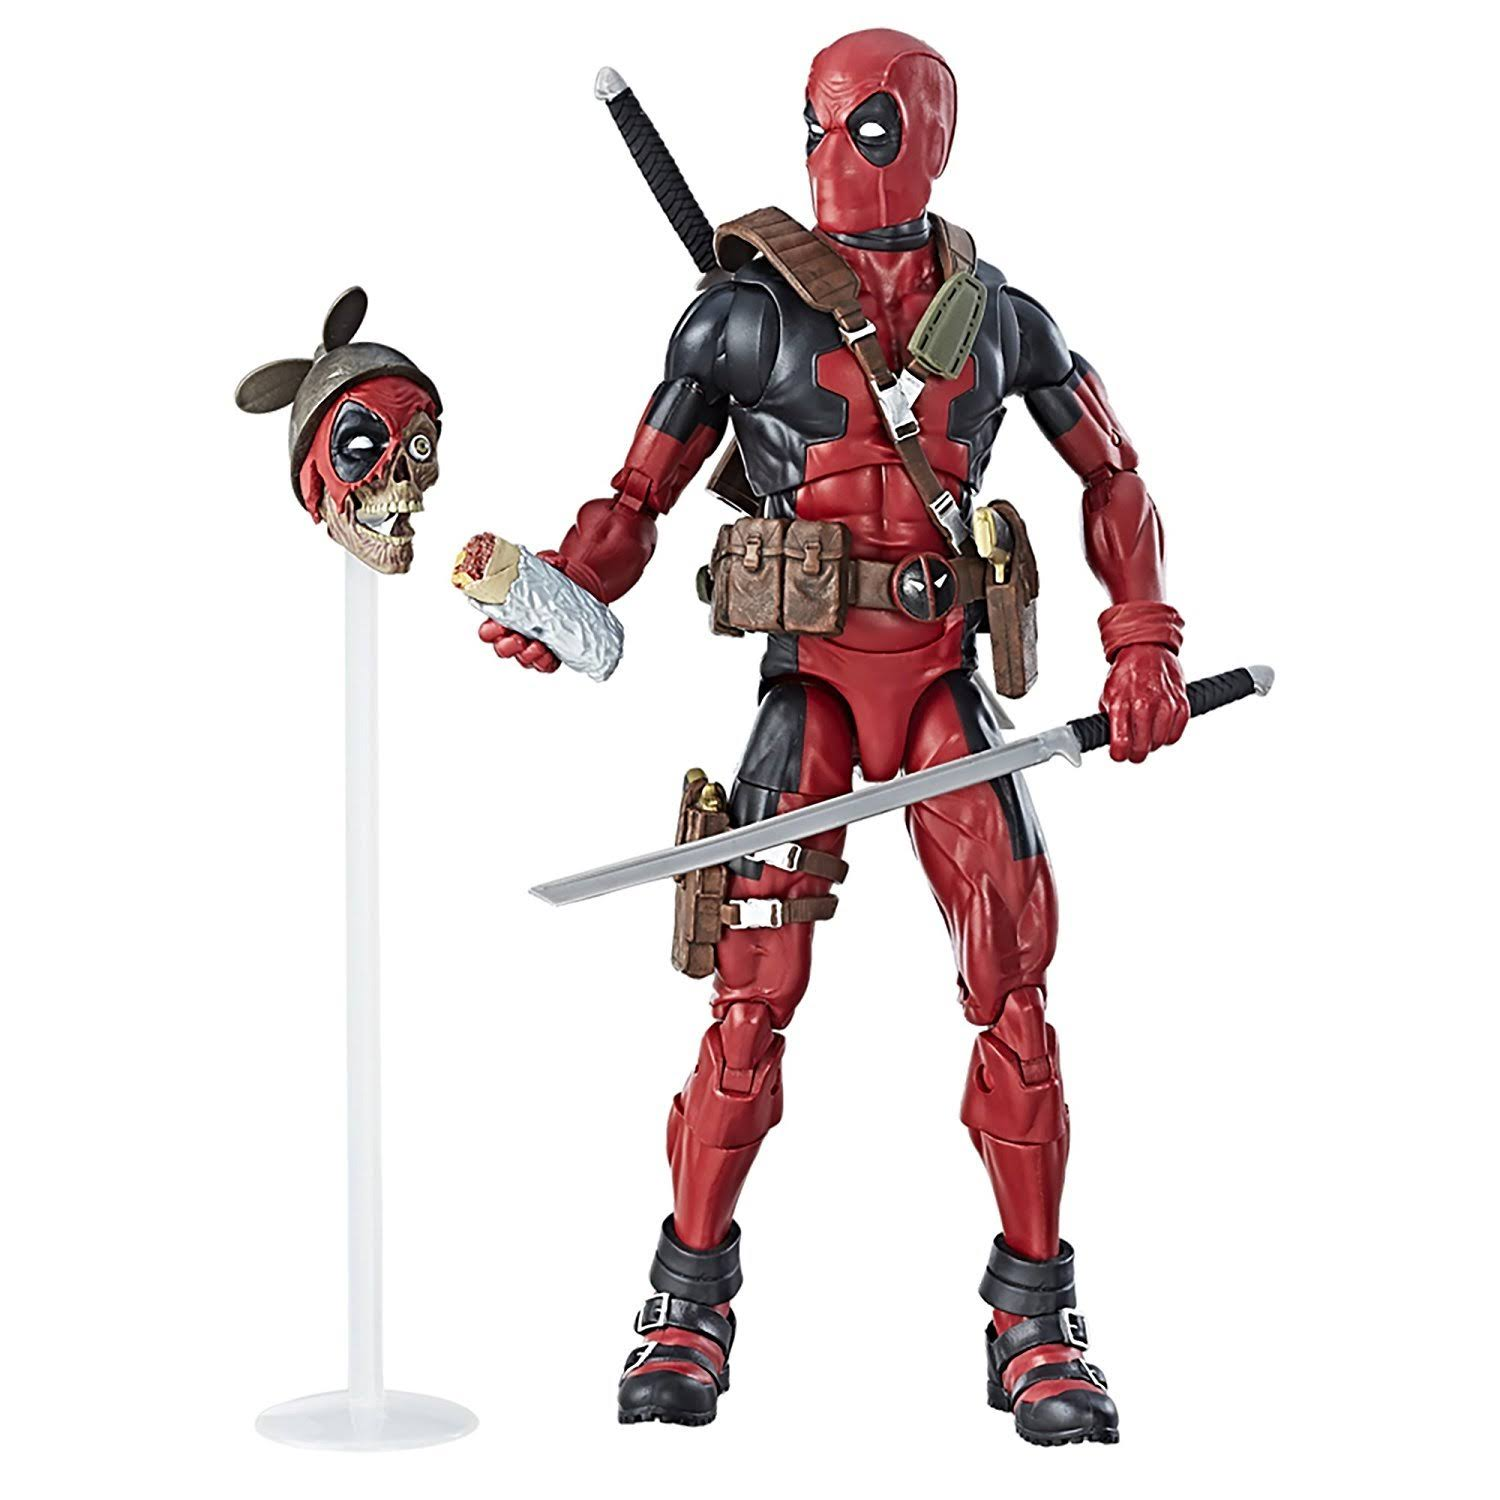 Hasbro Marvel Legends Series Action Figure - Deadpool, 12""